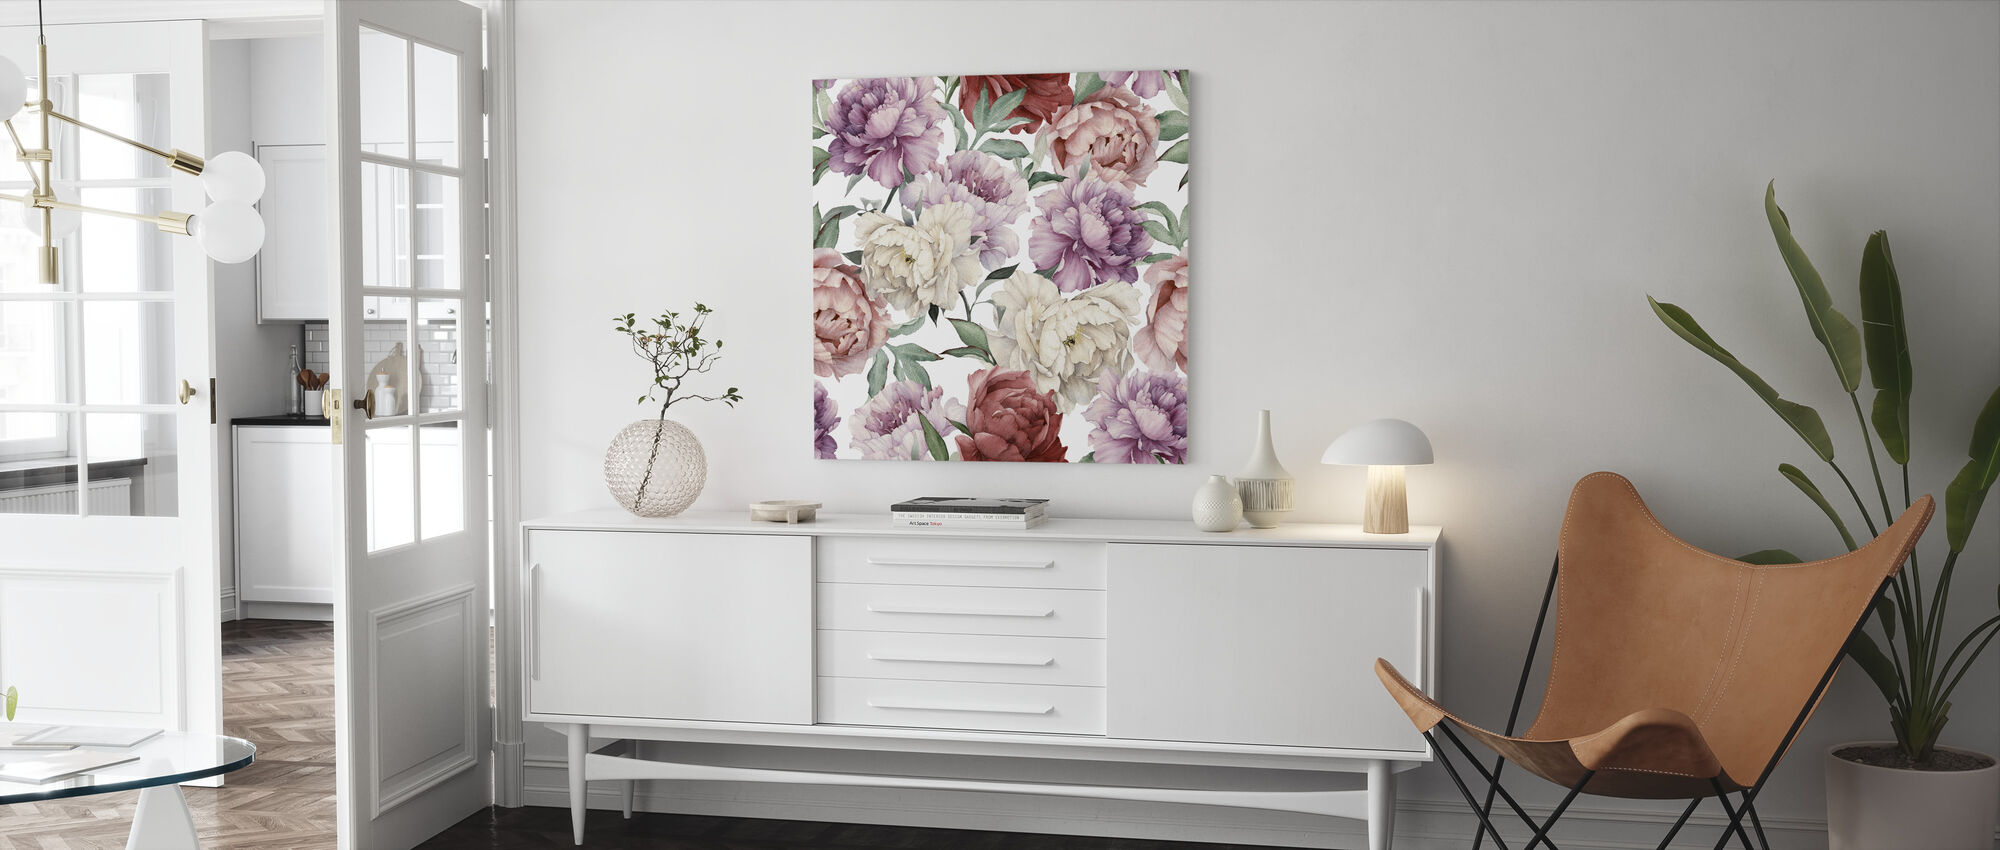 Sweet Peonies - Canvas print - Living Room